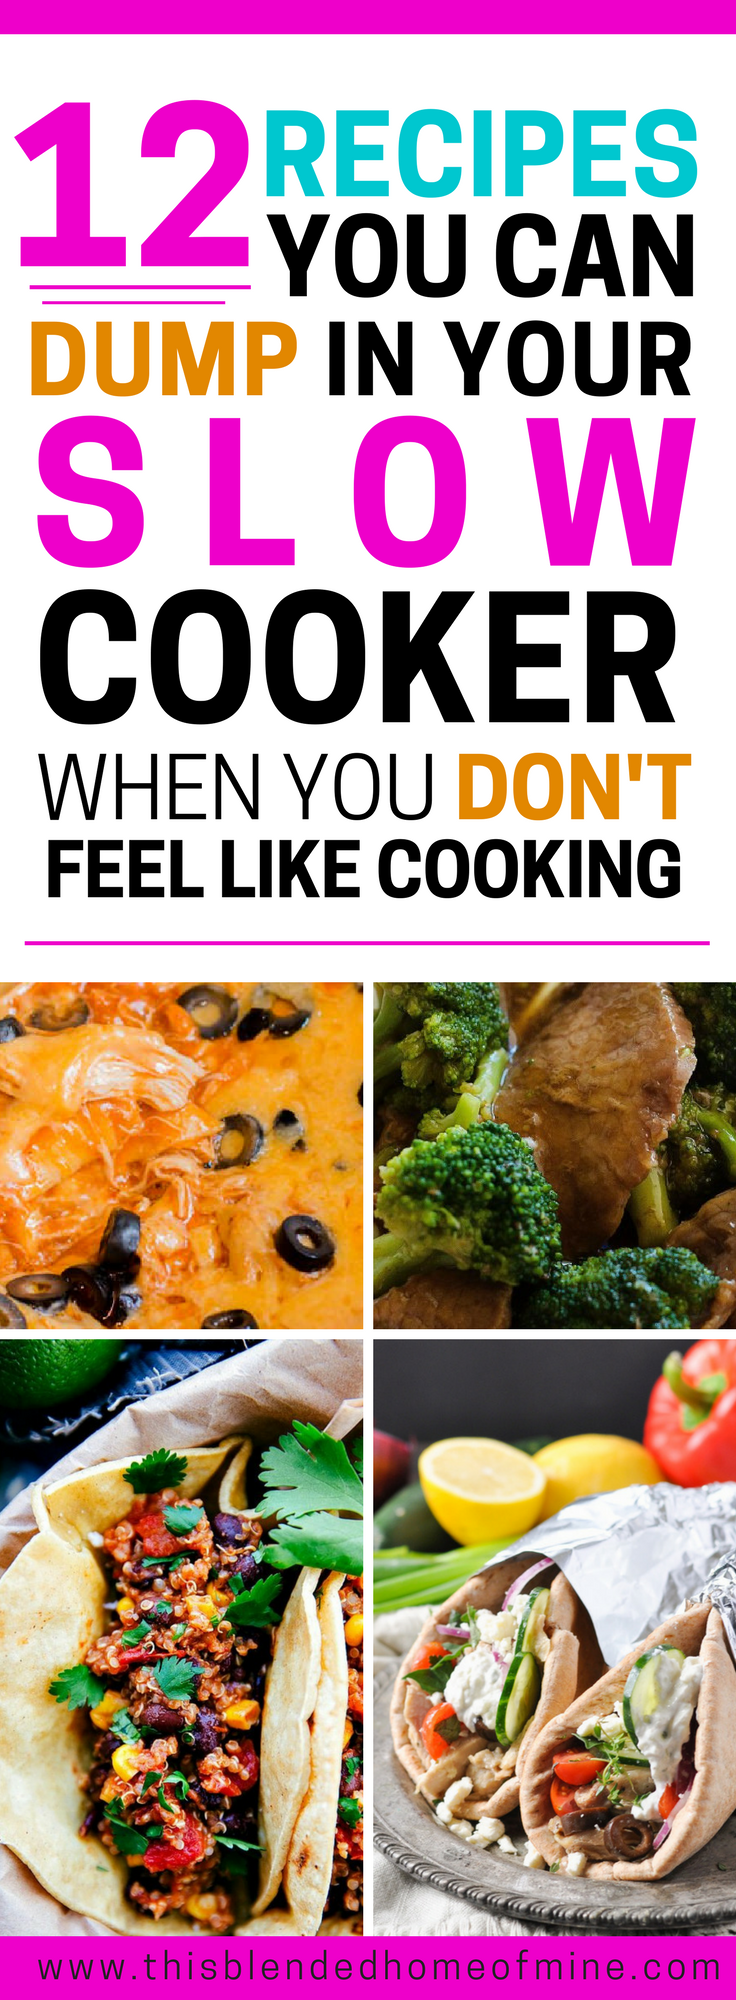 12 Easy Slow Cooker Recipes for when you just don't feel like cooking - This Blended Home of Mine _ Slow cooker recipes that the whole family will love